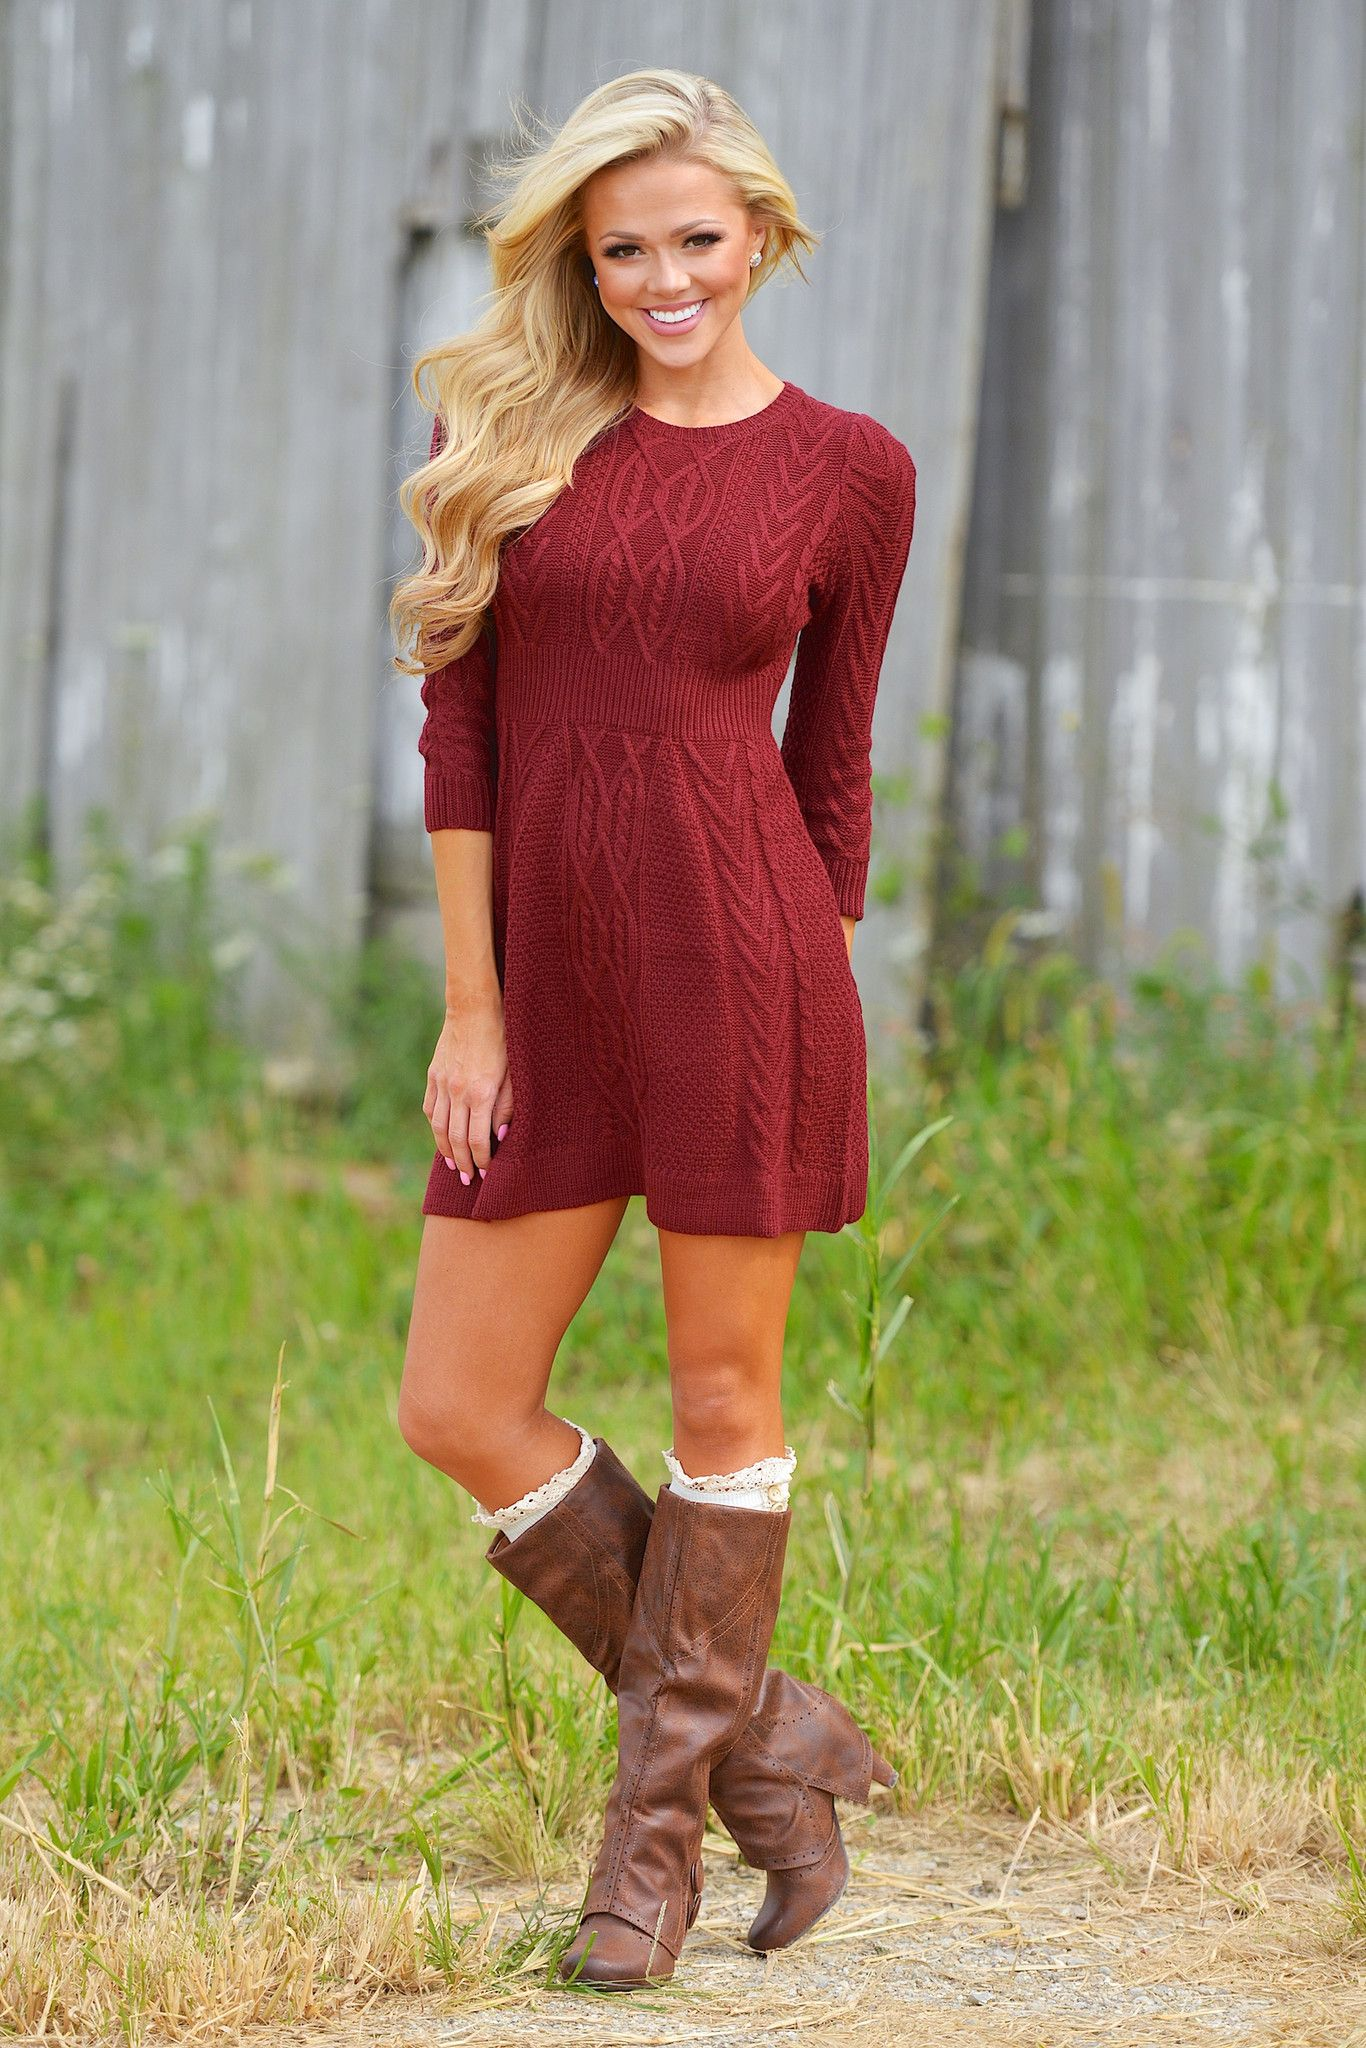 Meeting The Parents Sweater Dress - Burgundy from Closet Candy Boutique e29692686